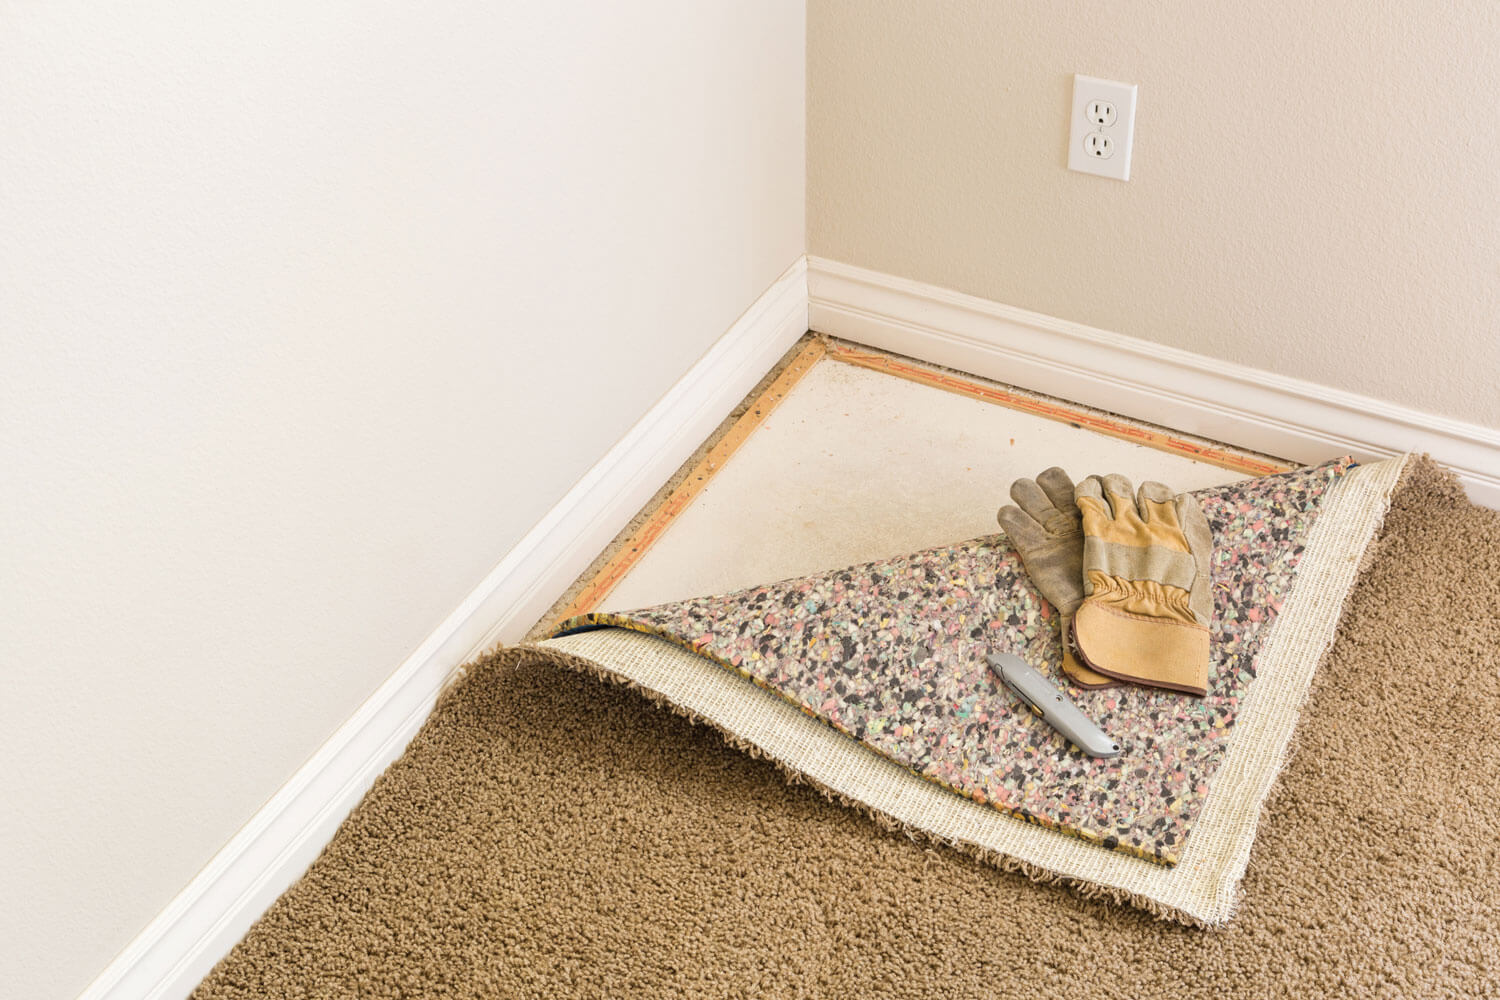 What To Do About Squeaky Floors Under Carpets